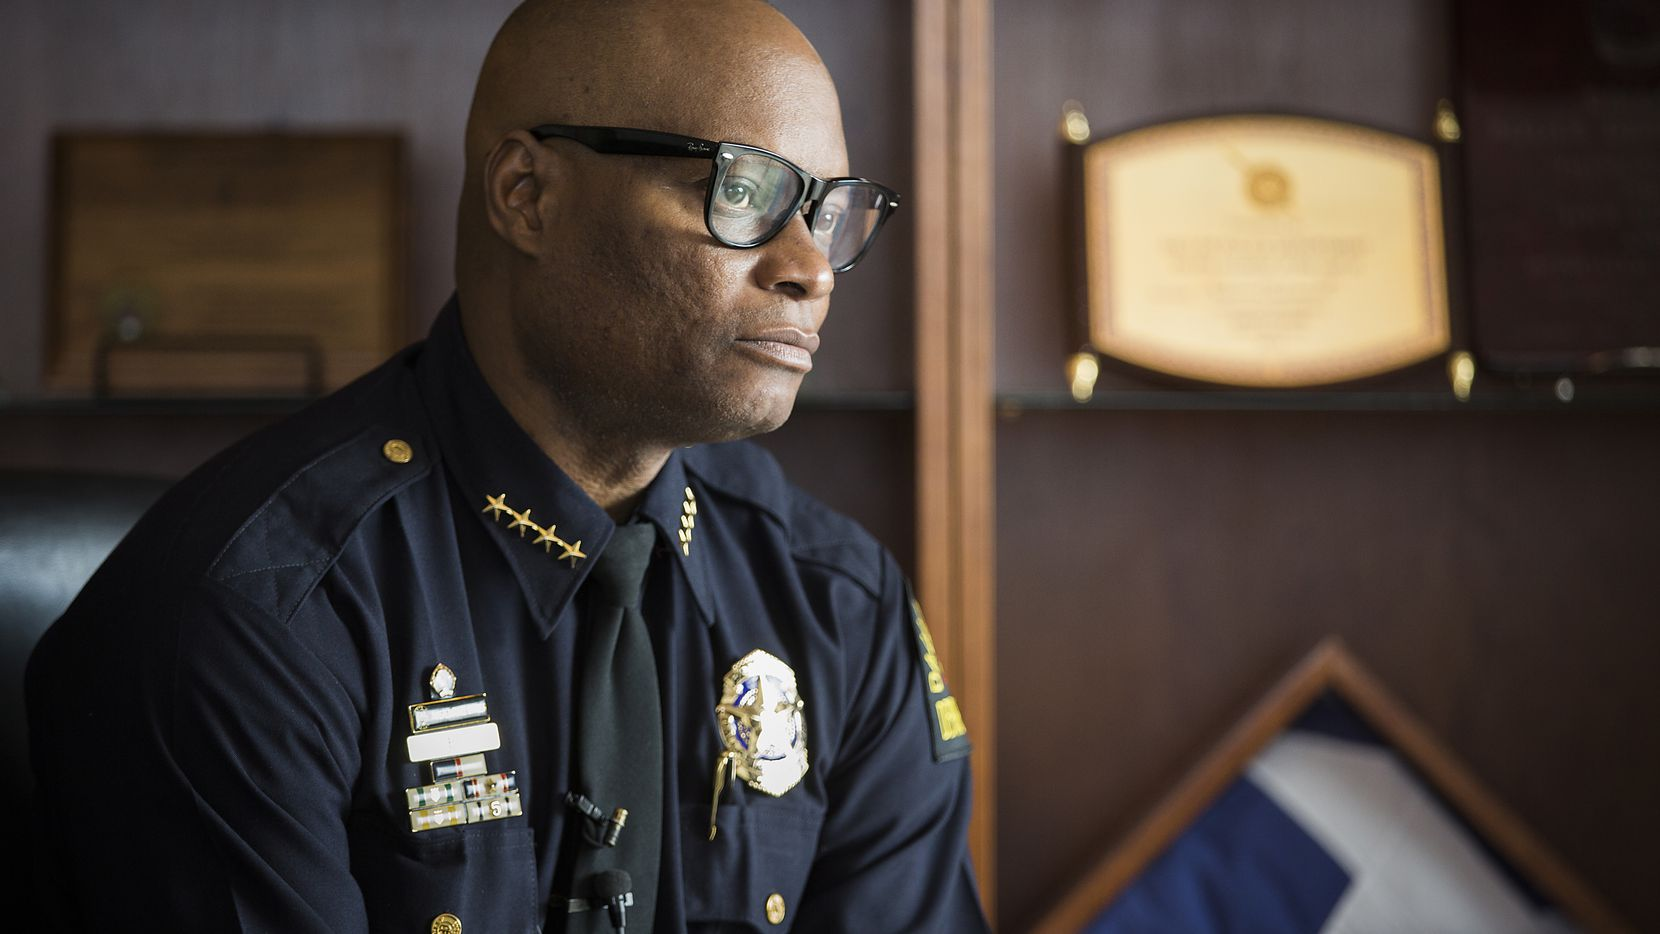 Dallas Police Chief David Brown photographed during an interview at DPD headquarters on Nov. 13, 2015.